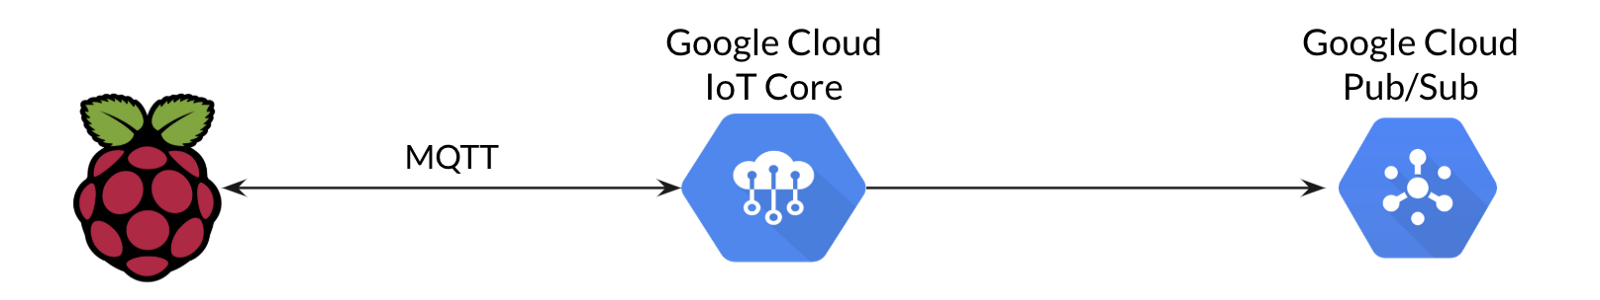 Interface between the device and Google Cloud IoT Core